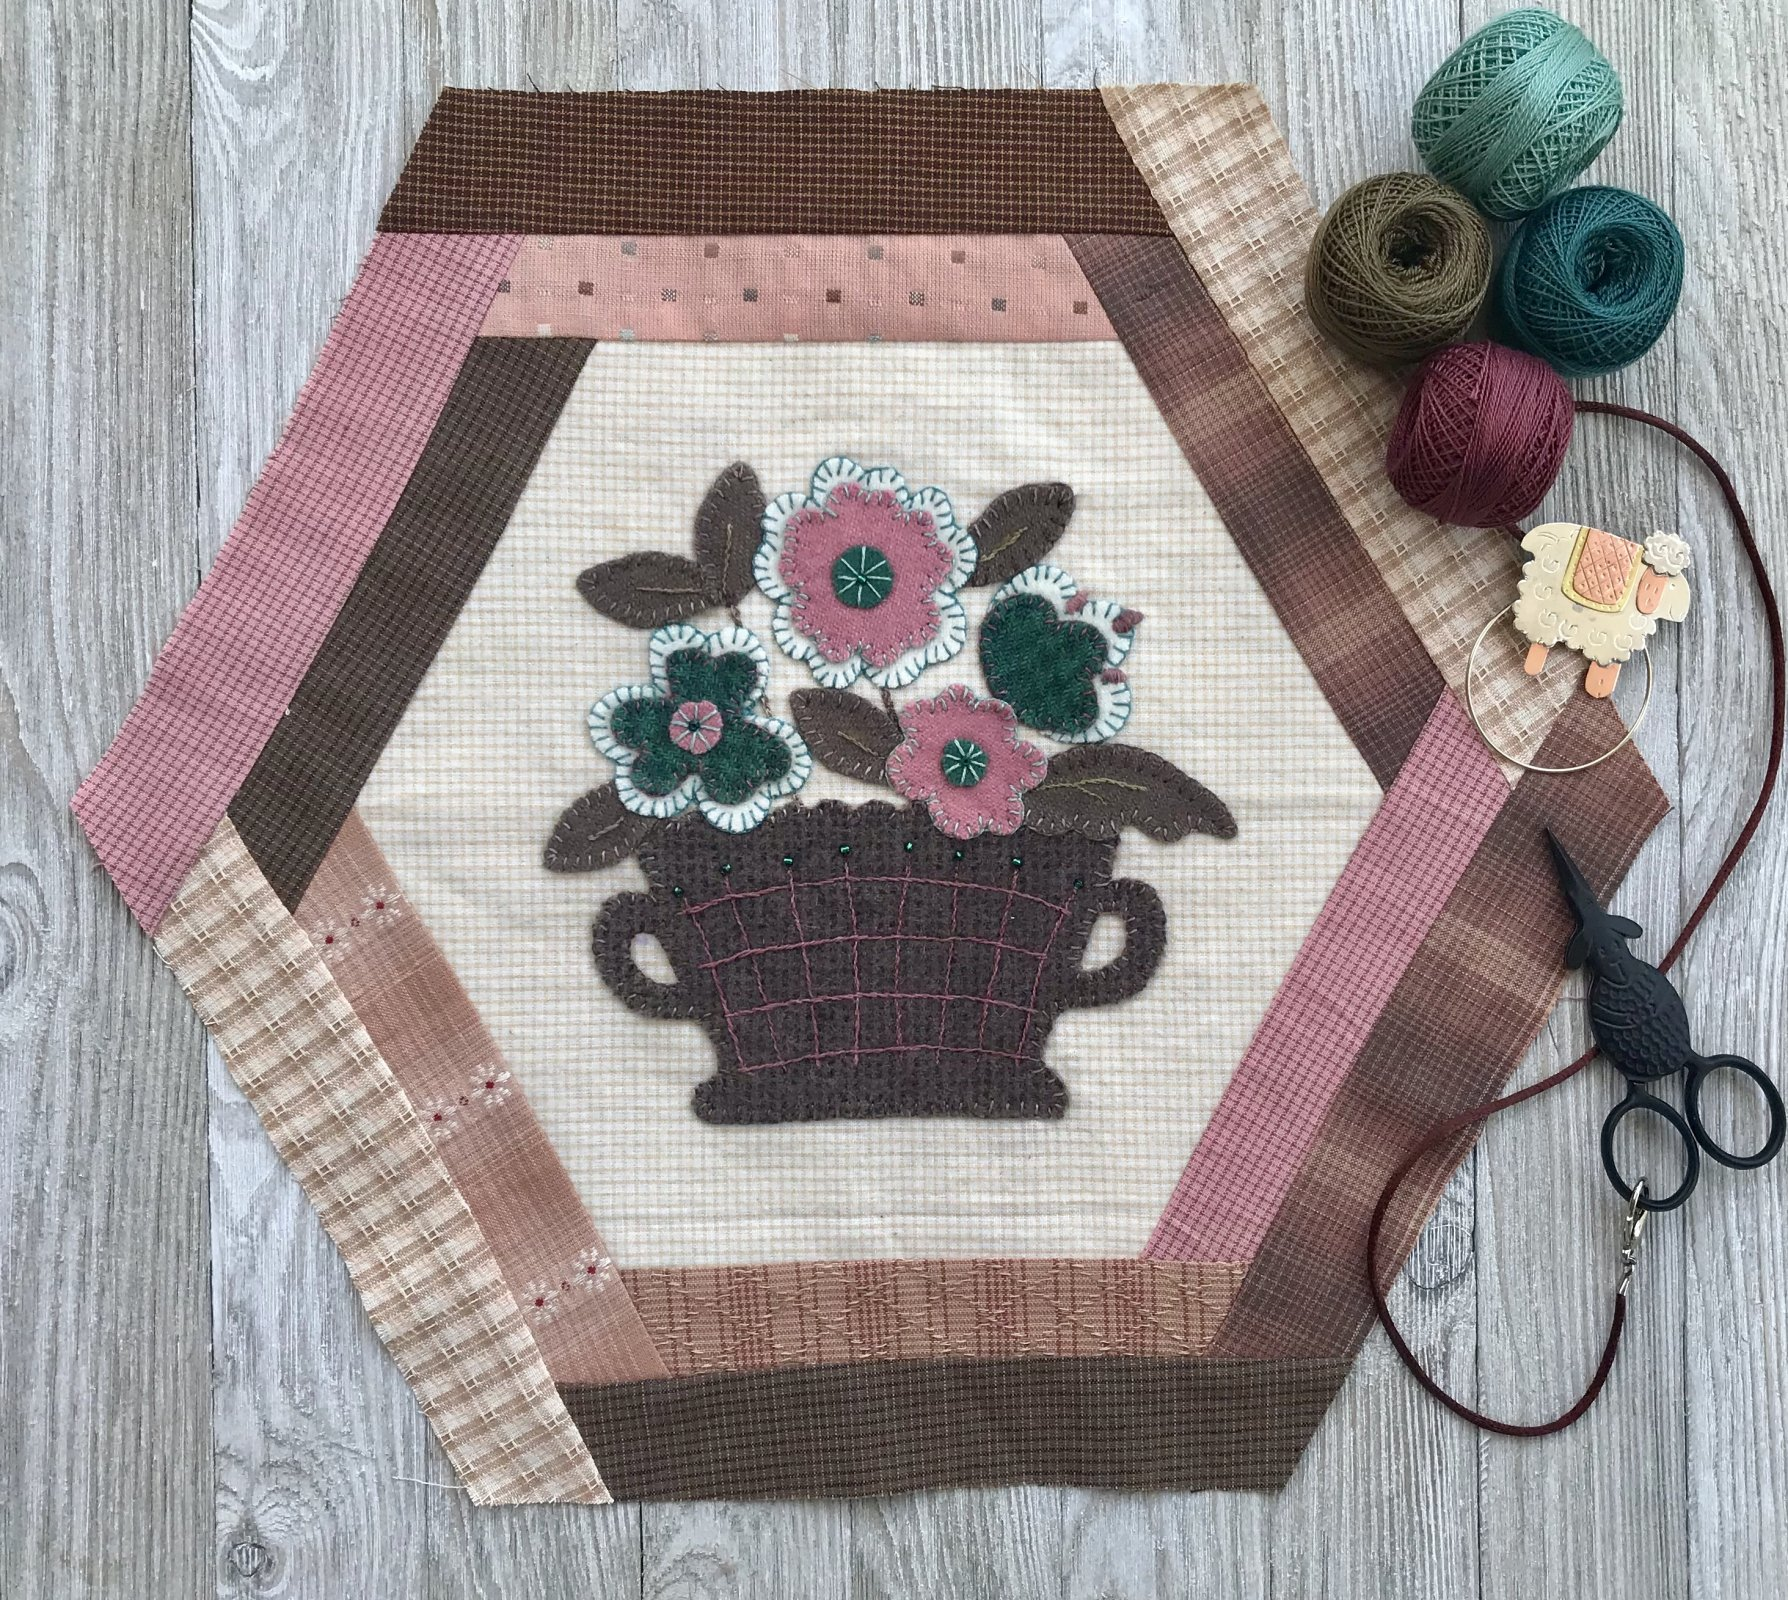 Vintage Treasures Block 6- Flower Basket